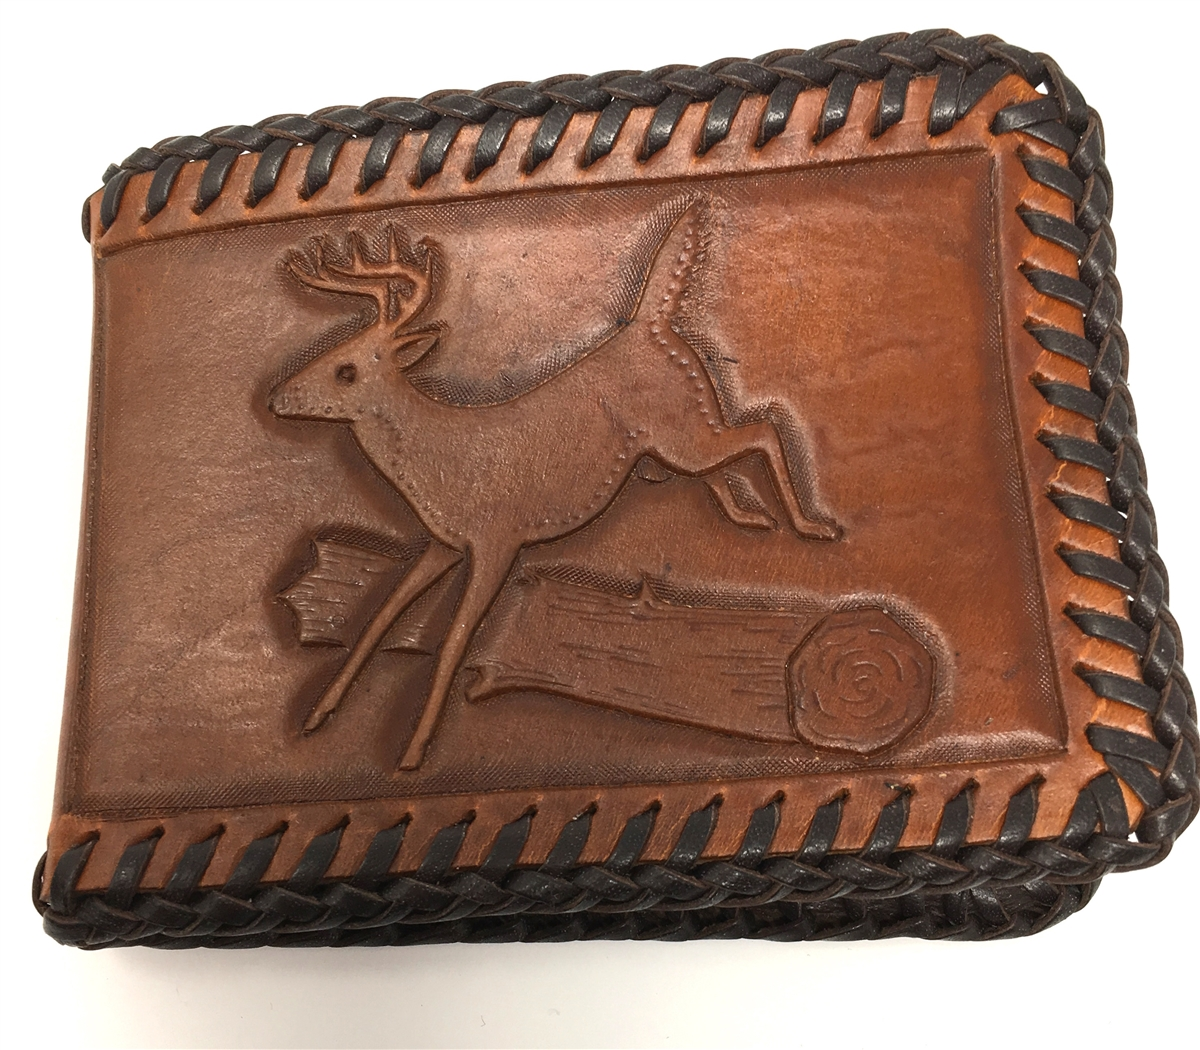 Amish Handcrafted Leather Wallet with Scenes